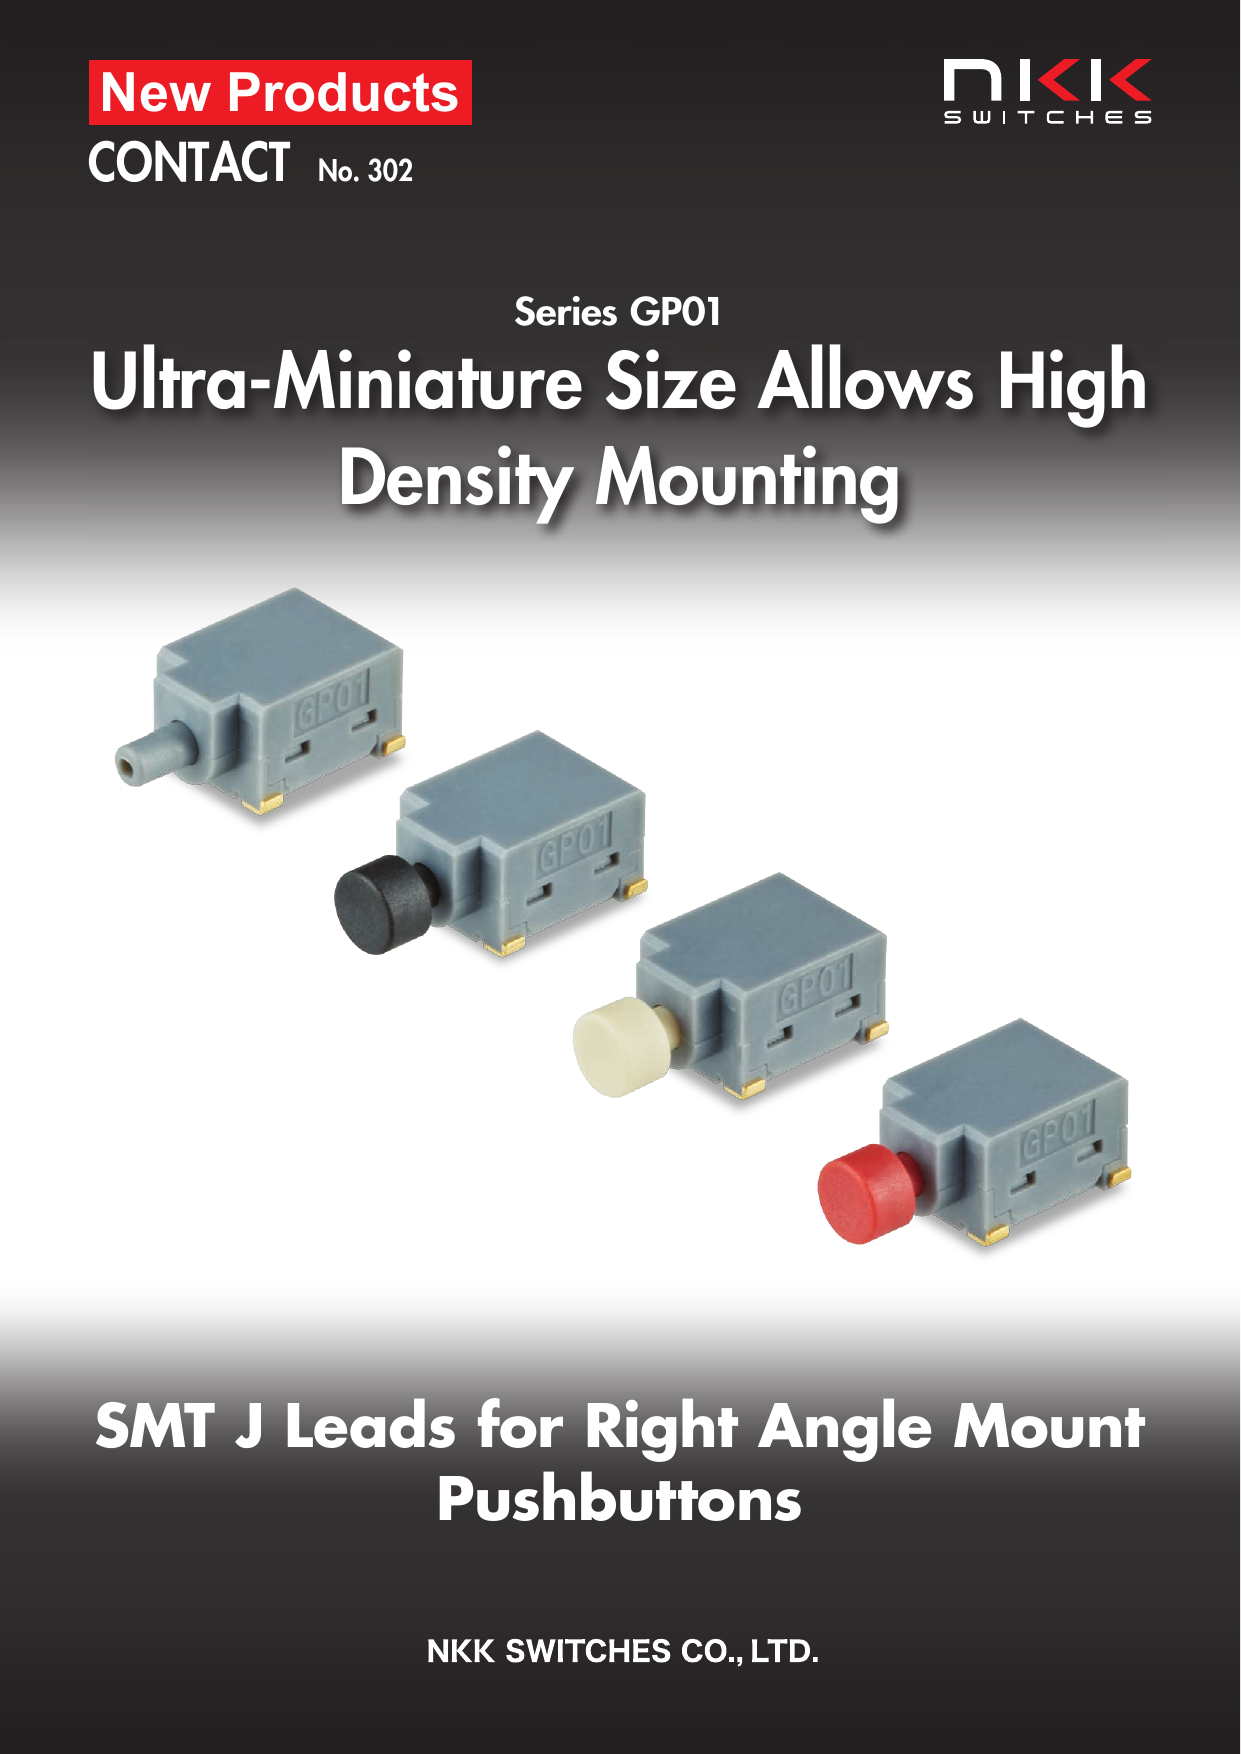 Series GP01 :  SMT J Leads for Right Angle Mount Pushbuttons